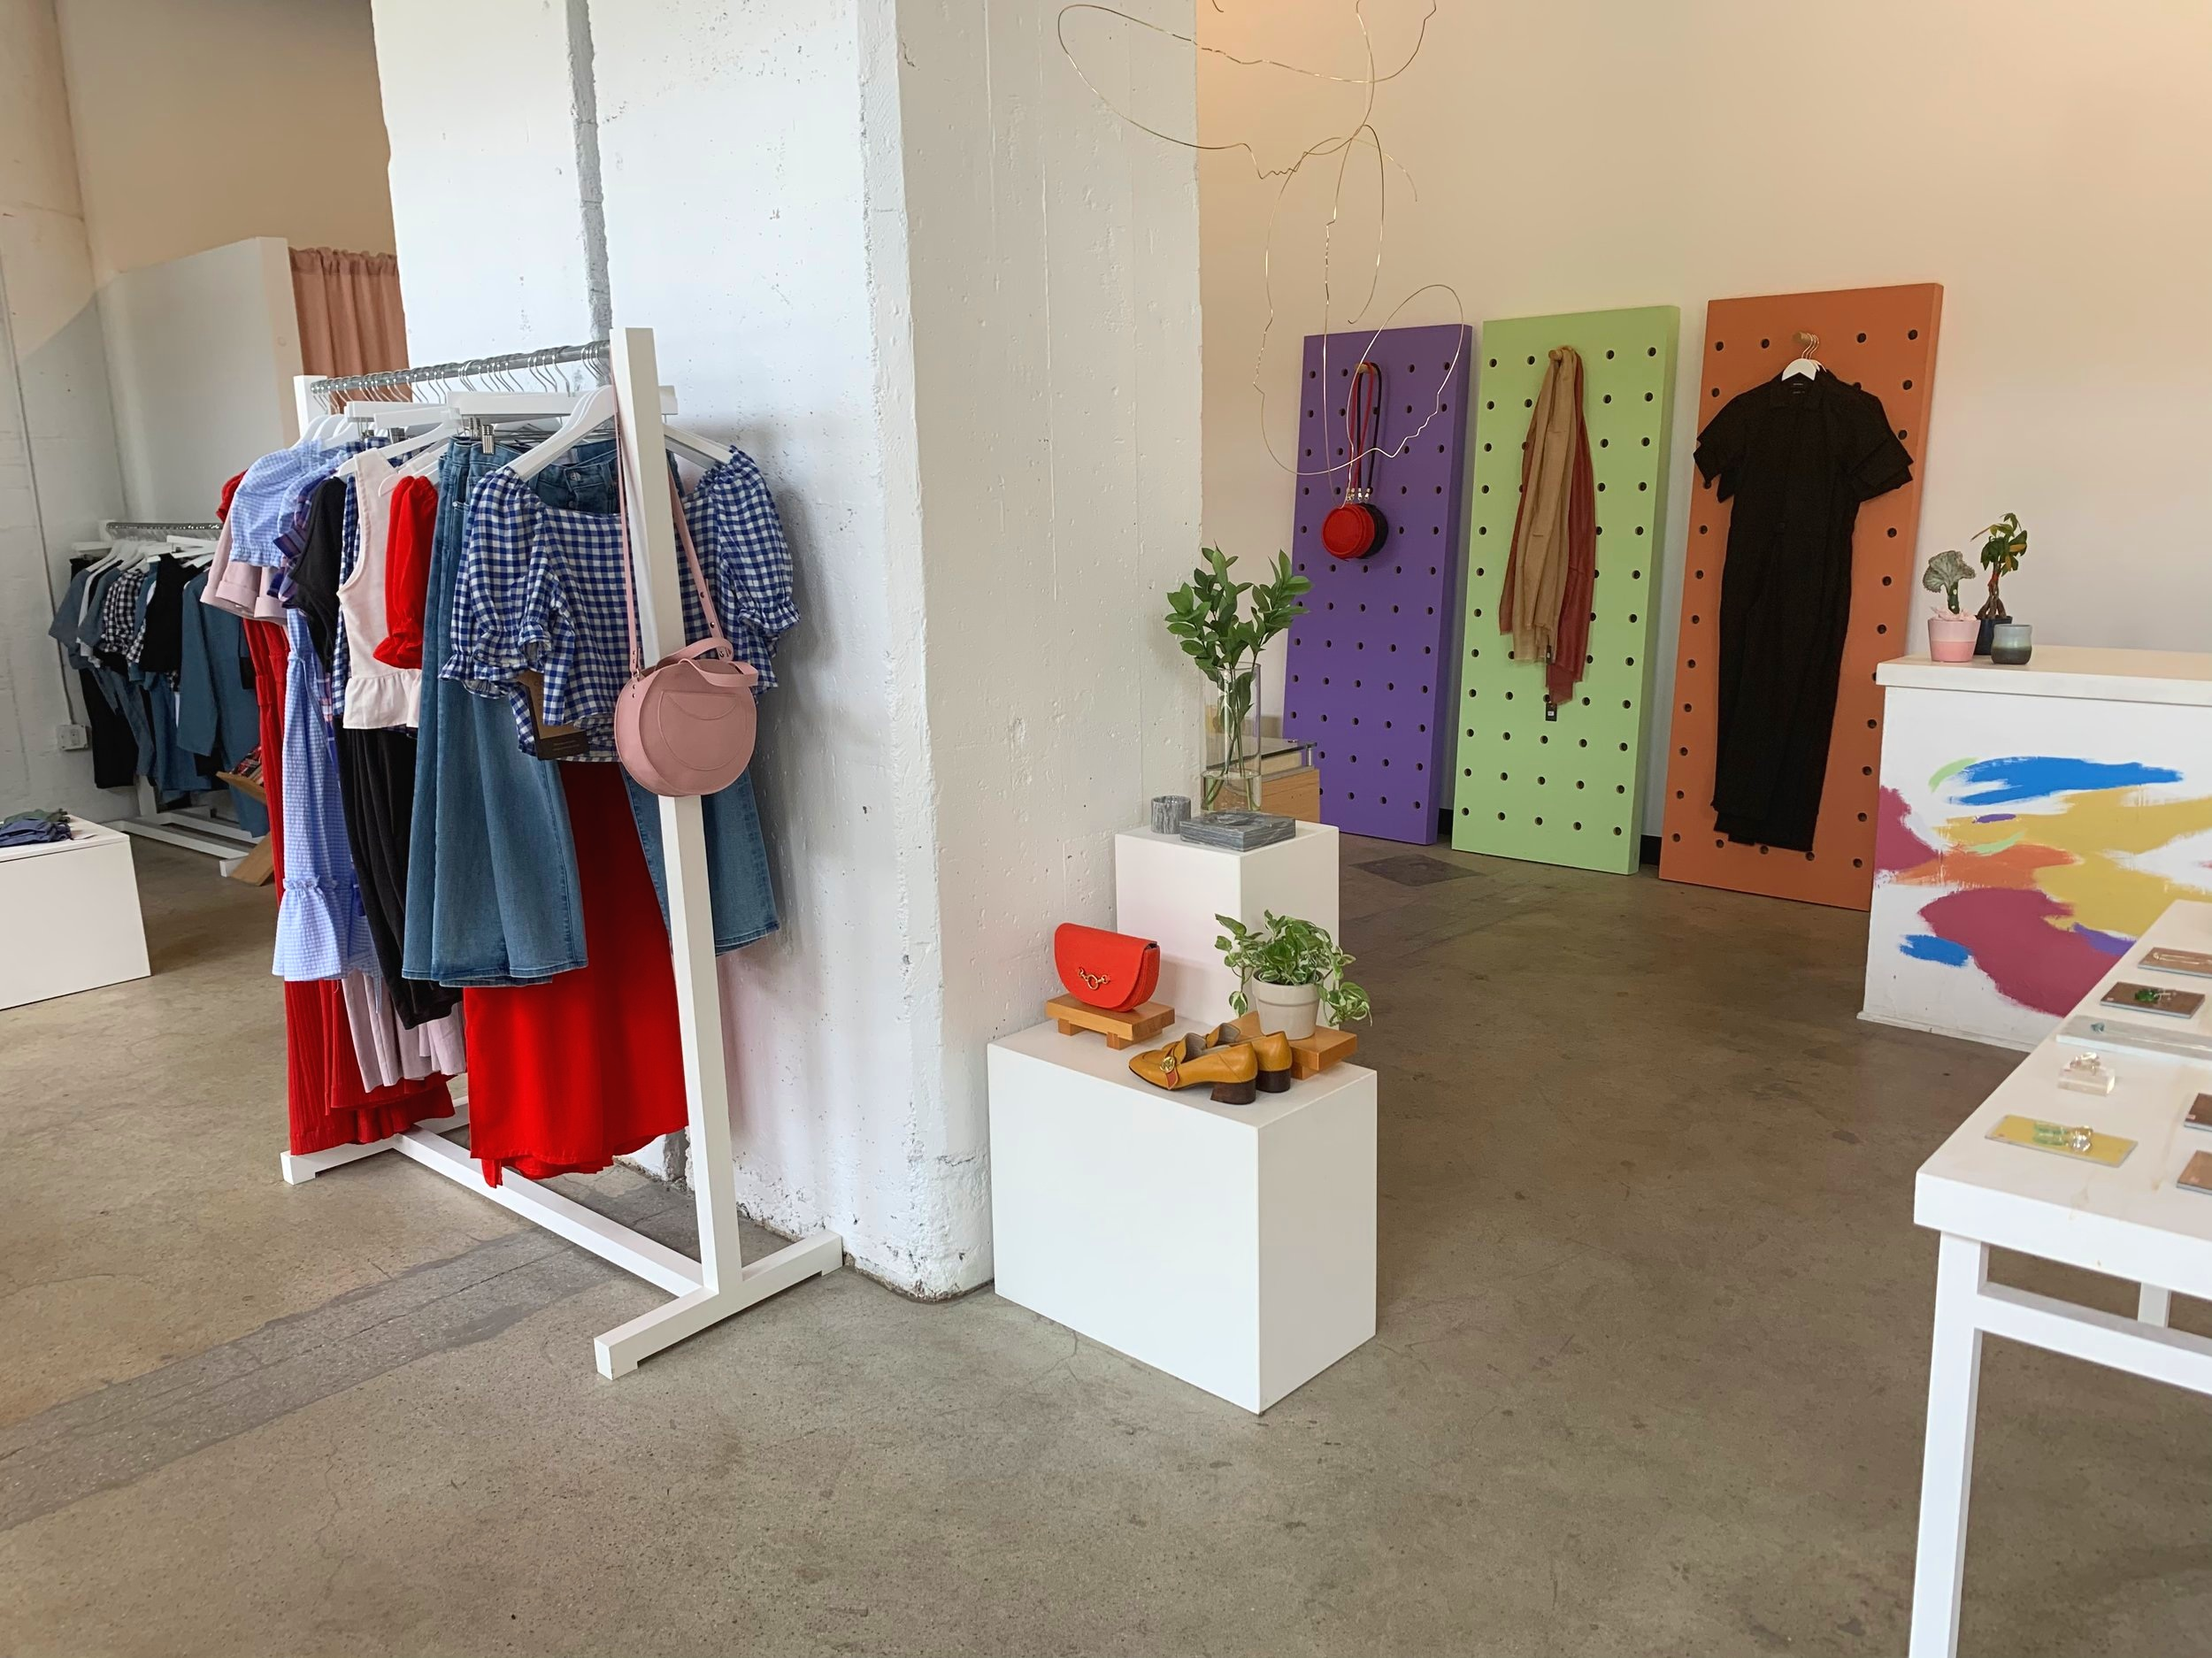 We need more pops of color in sustainable stores. Thank you, GALERIA.LA.